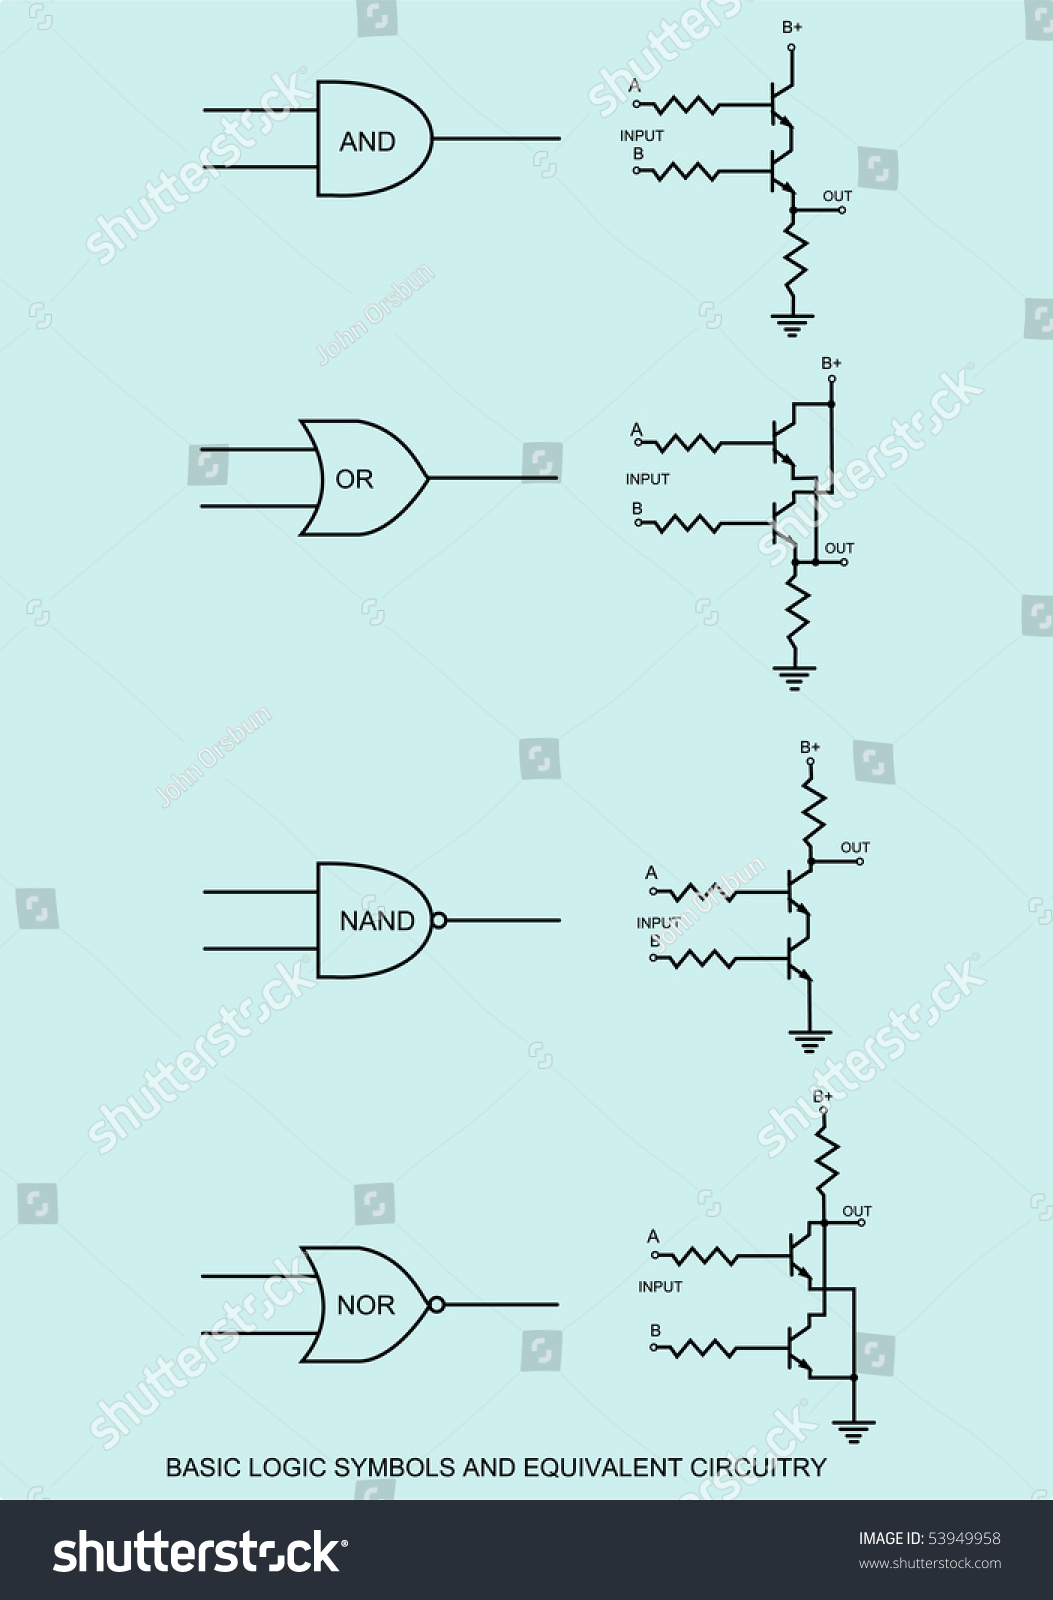 Symbolf Of Transistor Schematic Trusted Schematics Diagram Mosfetcircuitsymbols Raster Drawing Logic Symbols Equivalent Stock And Circuits